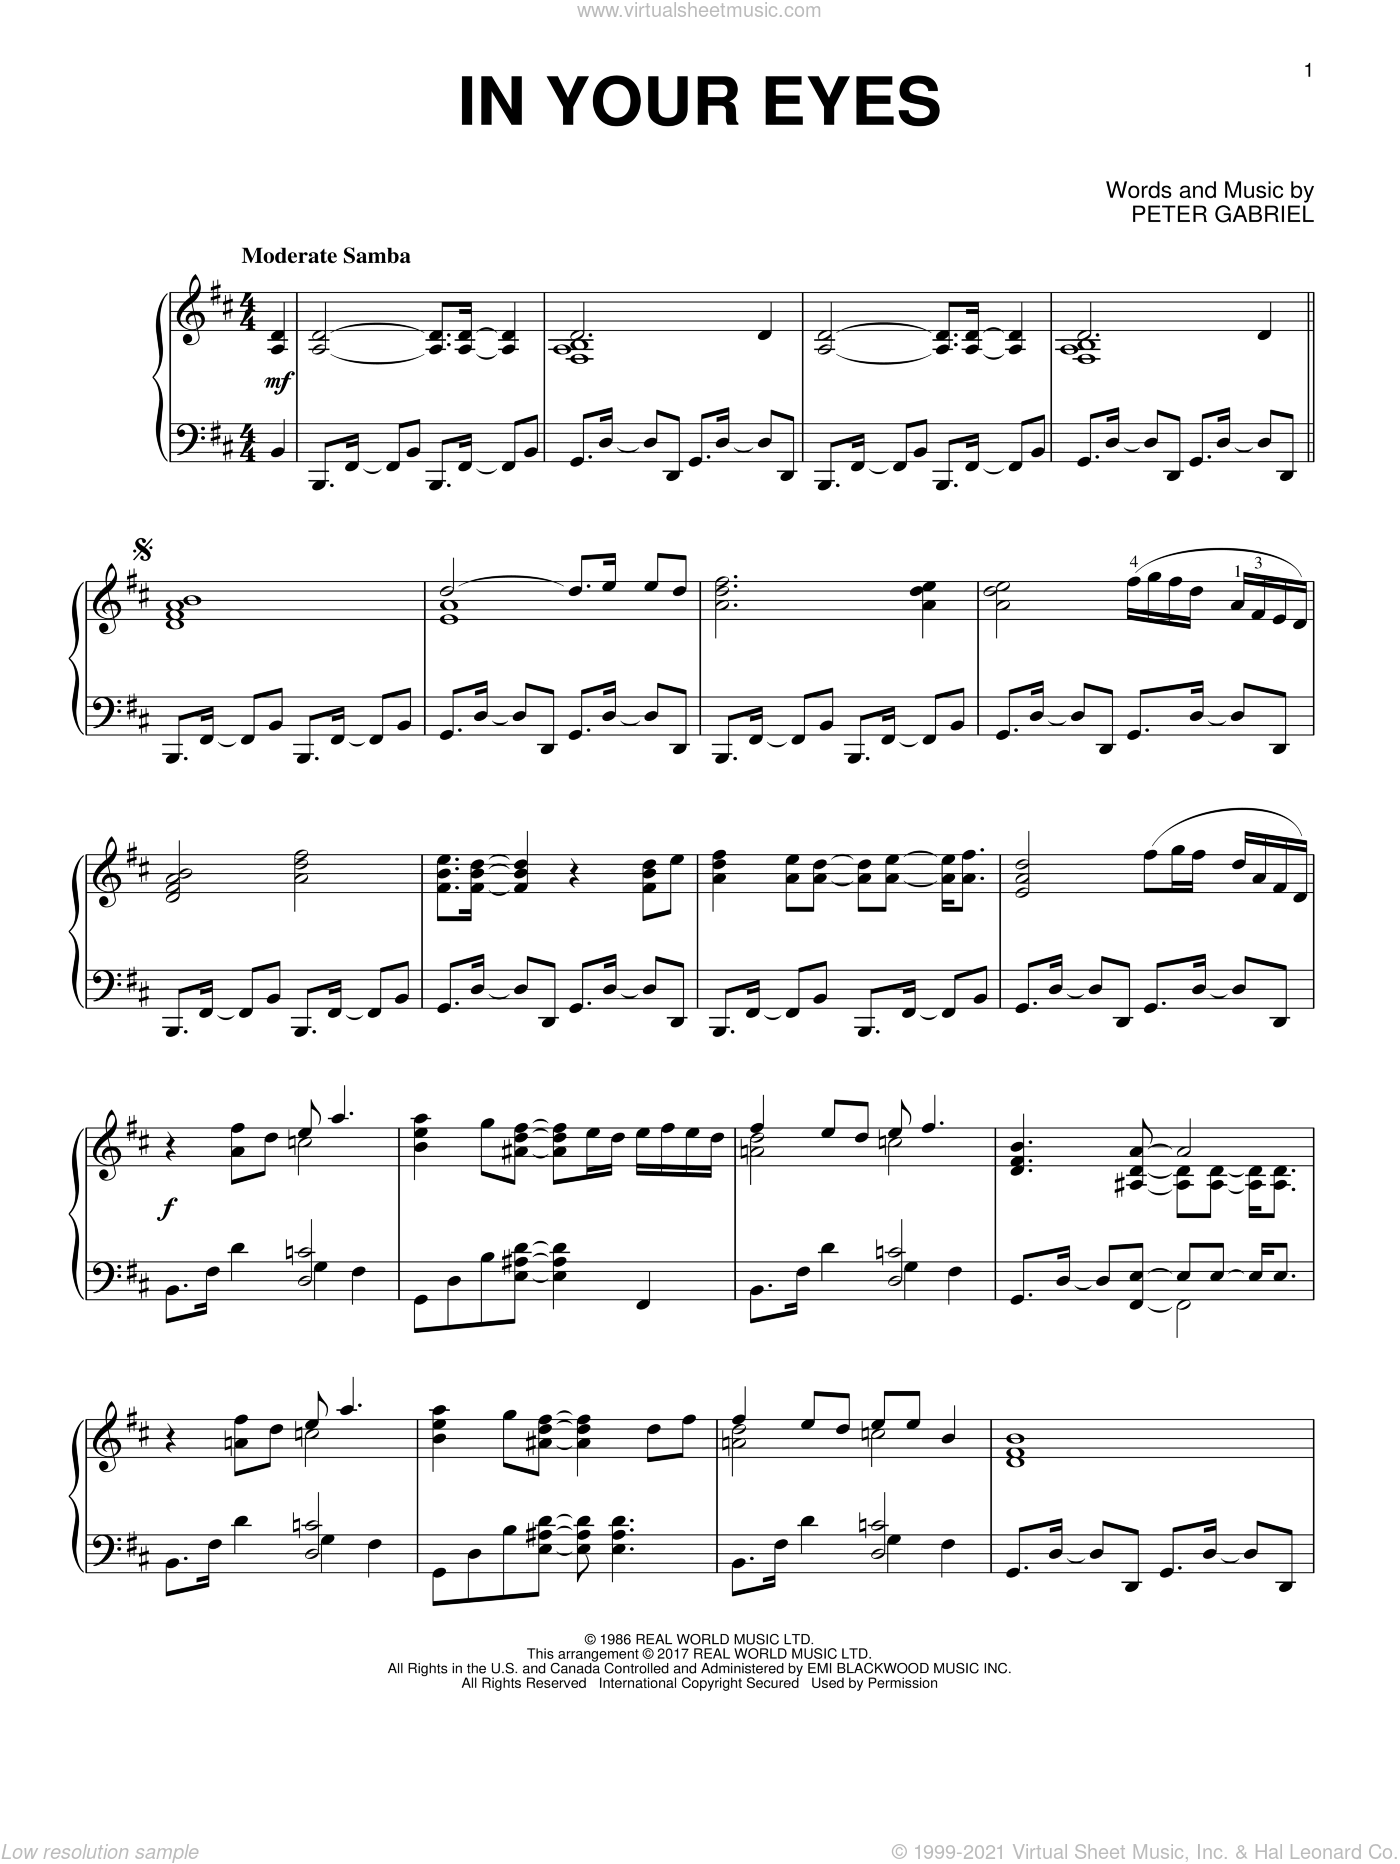 In Your Eyes, (intermediate) sheet music for piano solo by Peter Gabriel, intermediate skill level